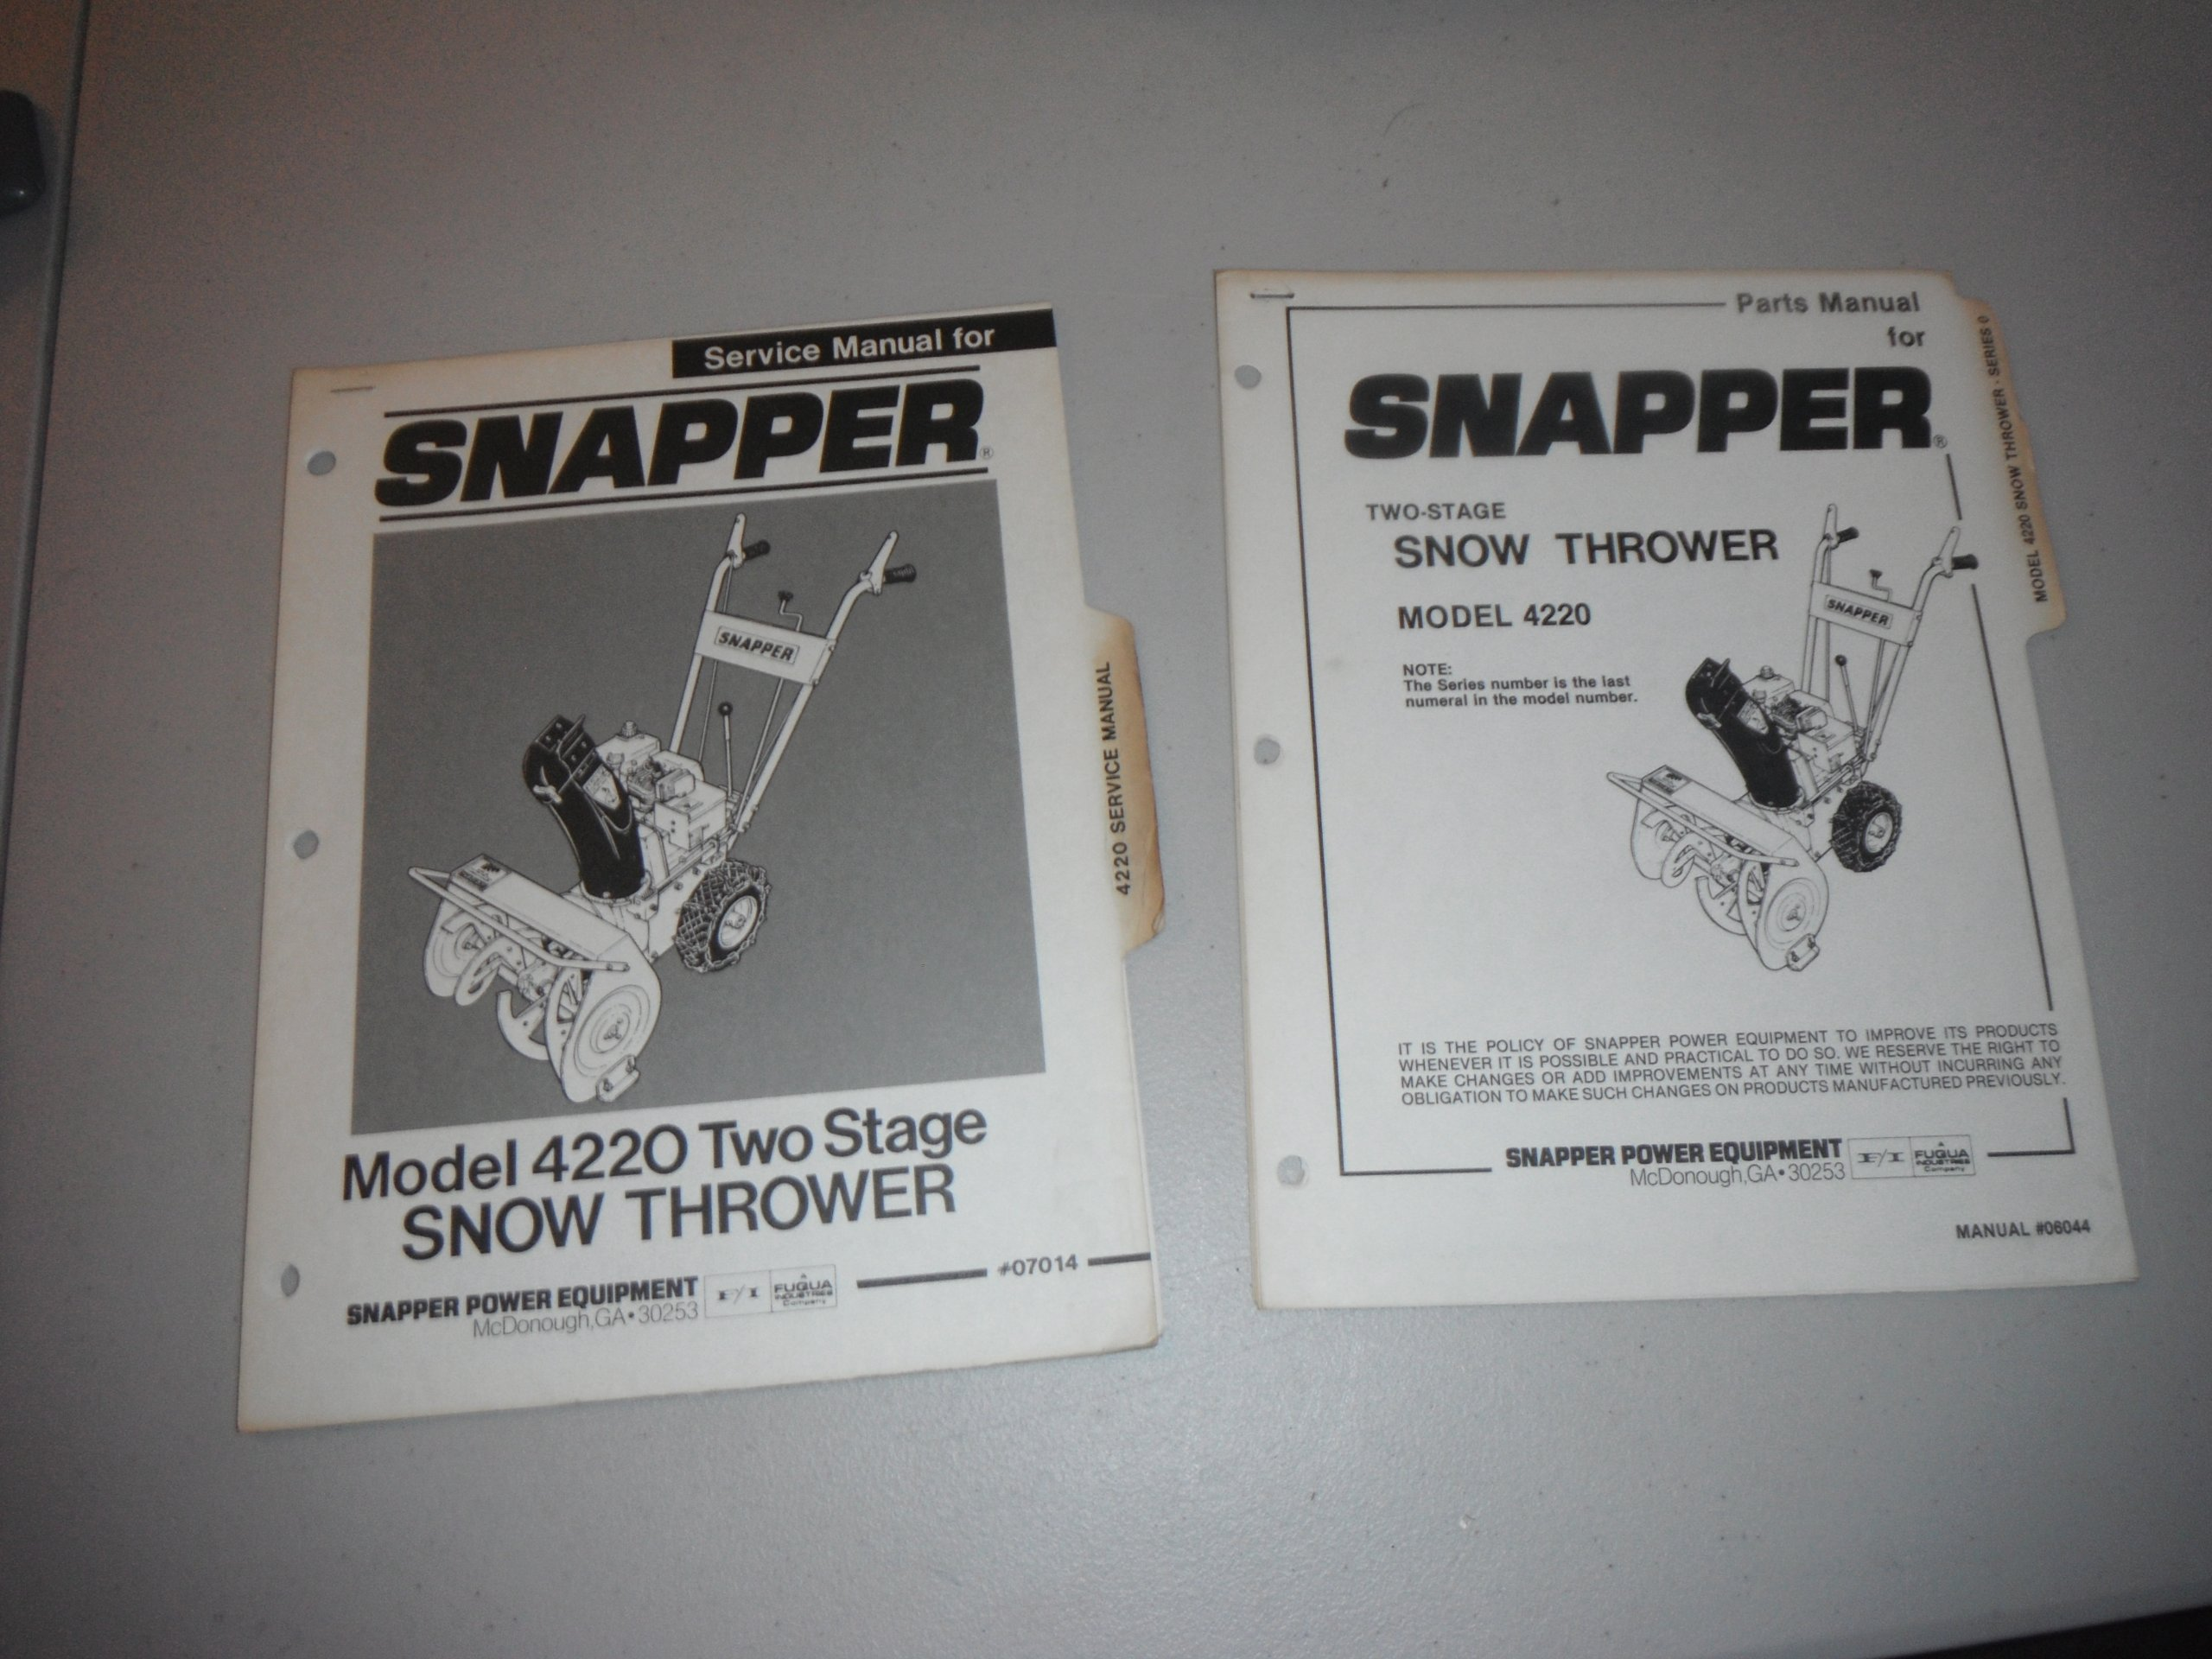 Snapper Parts Manual Service Two Stage Snow Thrower Model Diagram 4220 1985 Books